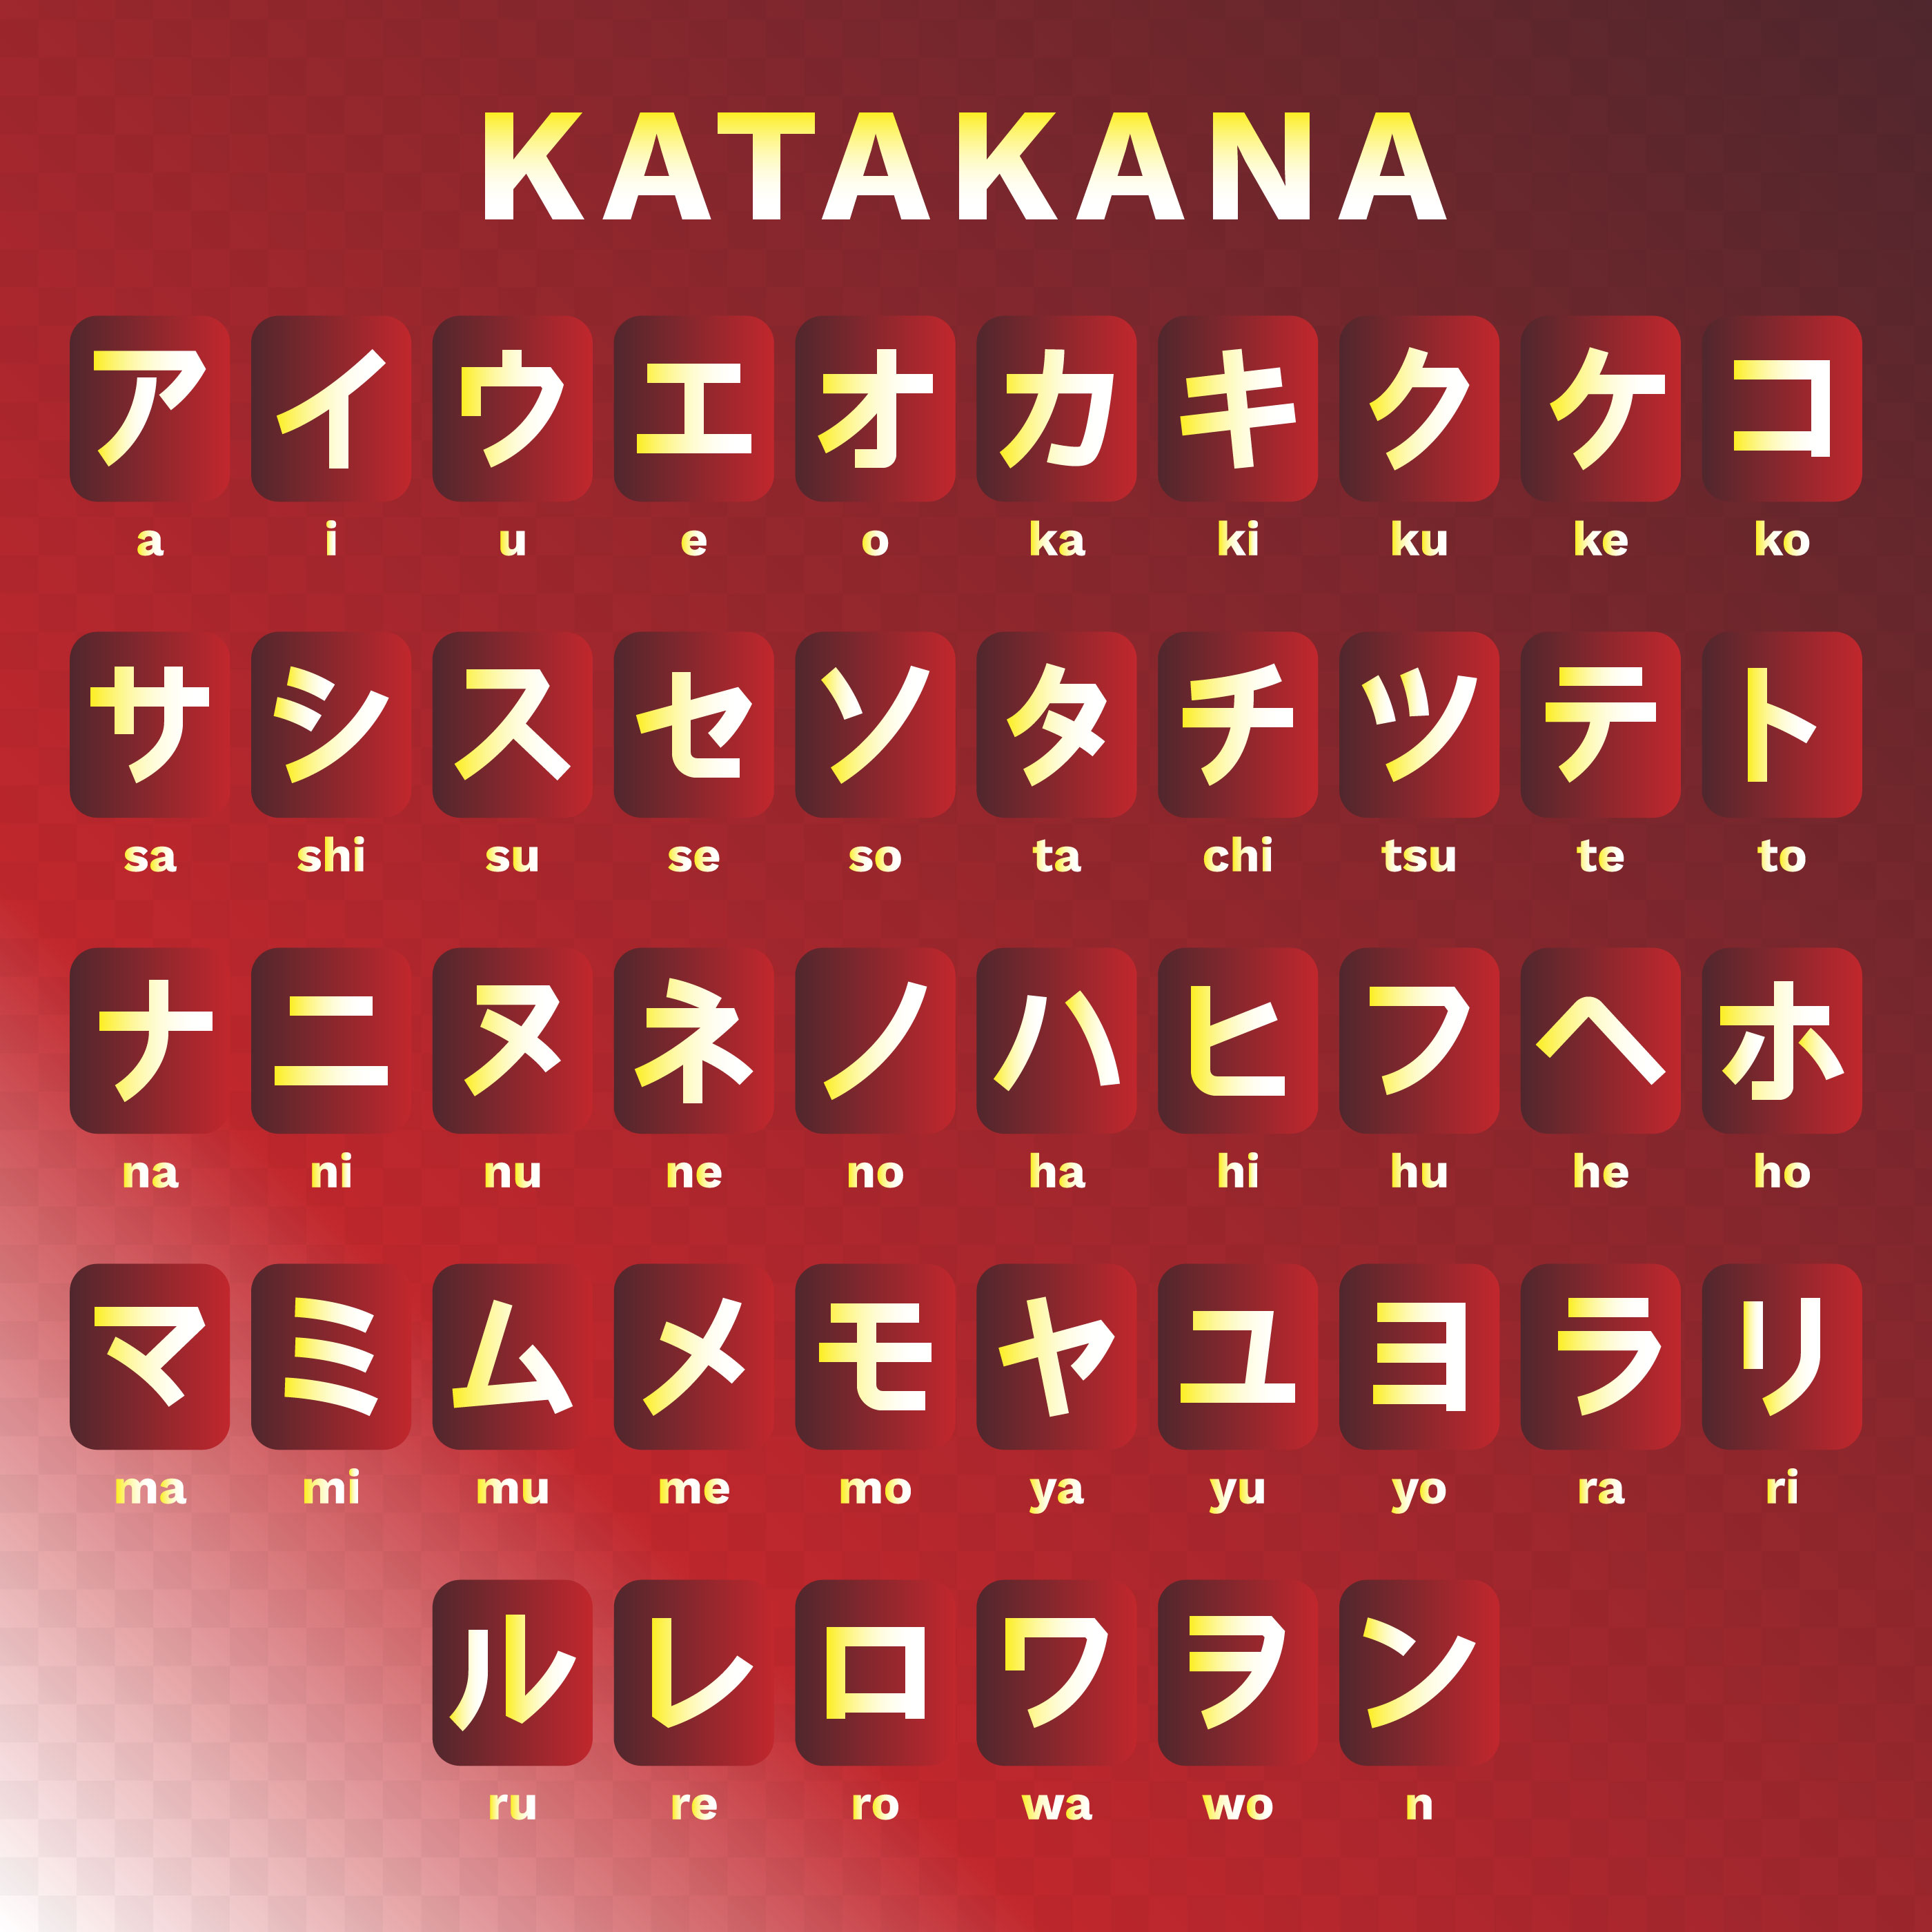 Japanese Letters Free Vector Art 5500 Free Downloads